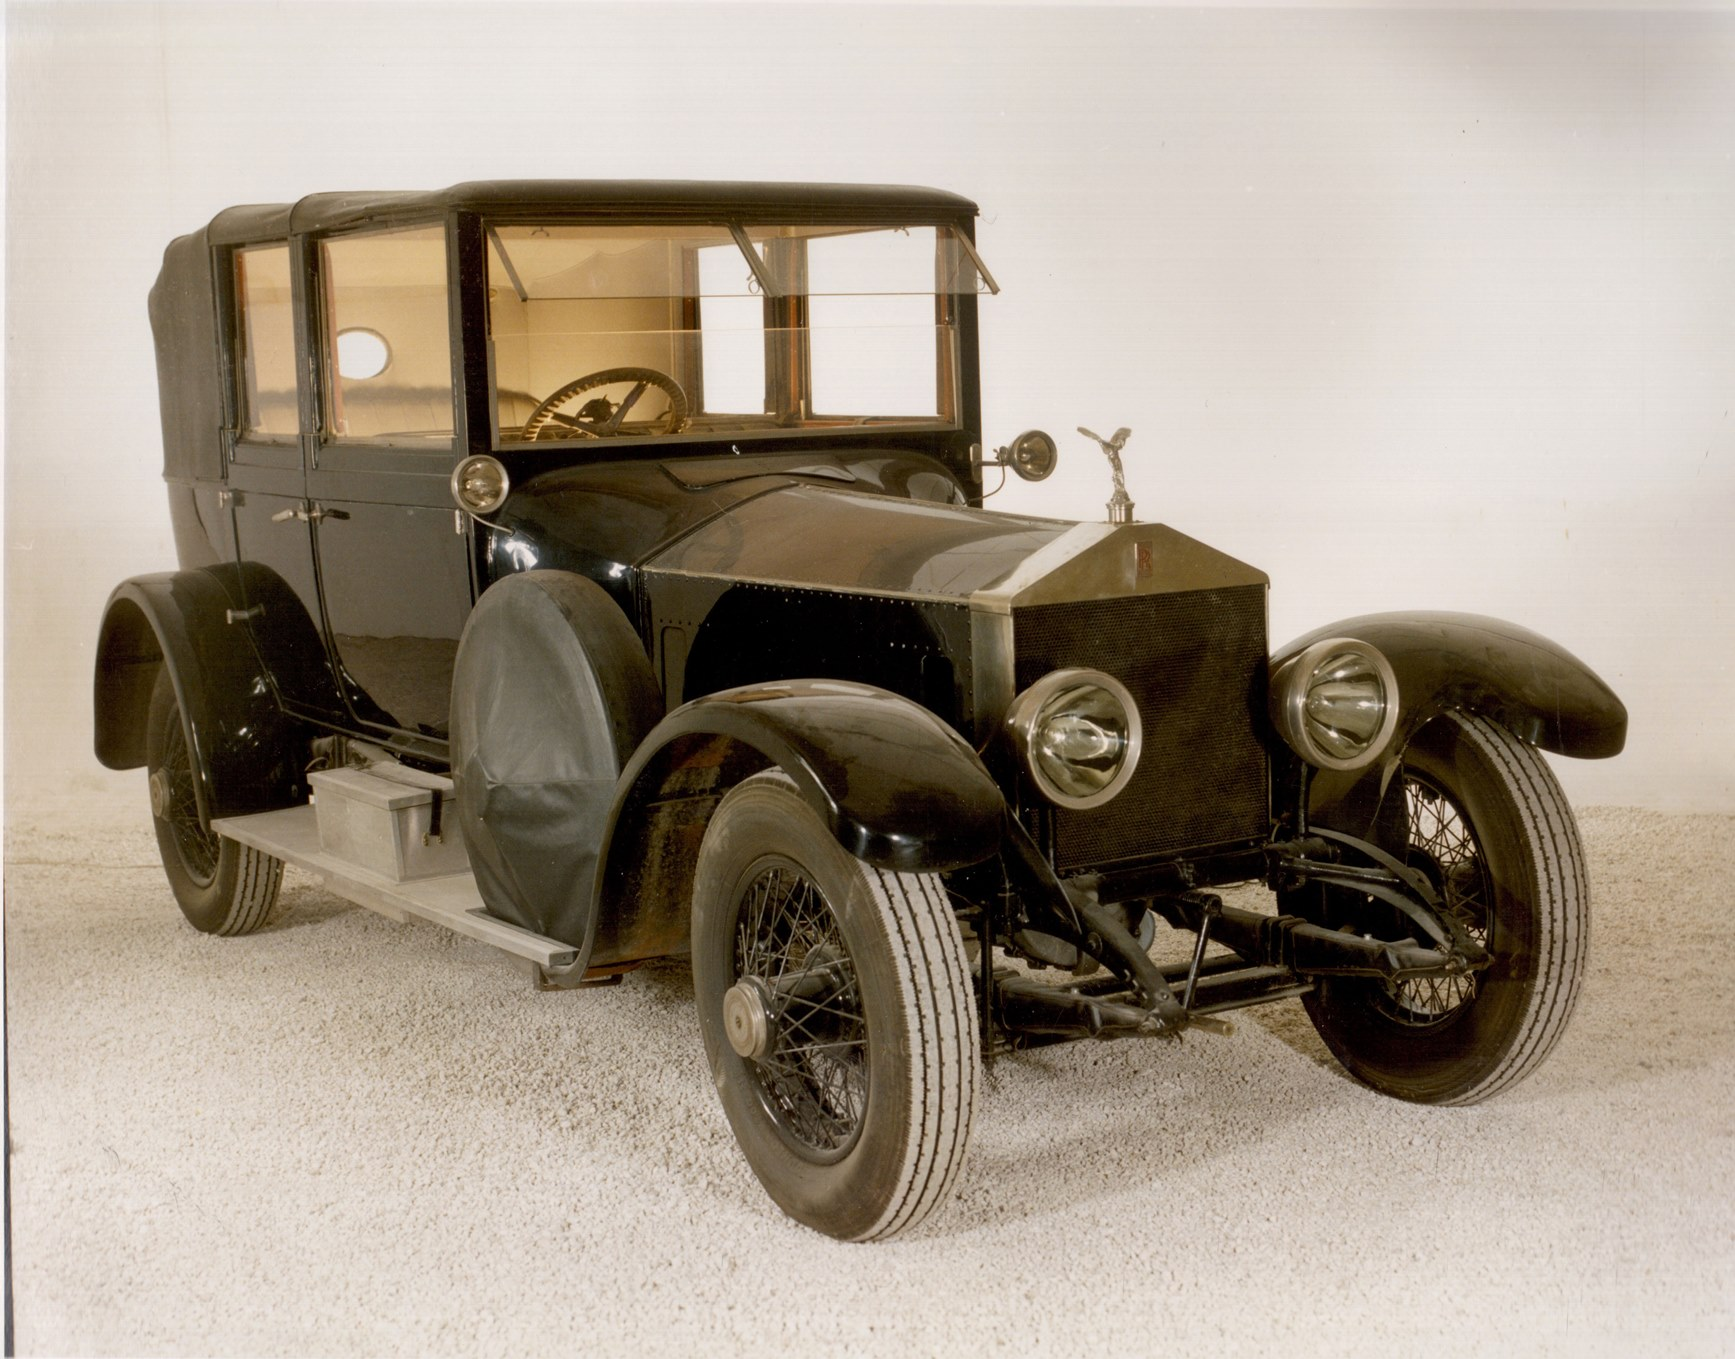 FIA Heritage Museums: Historic Vehicles around the World